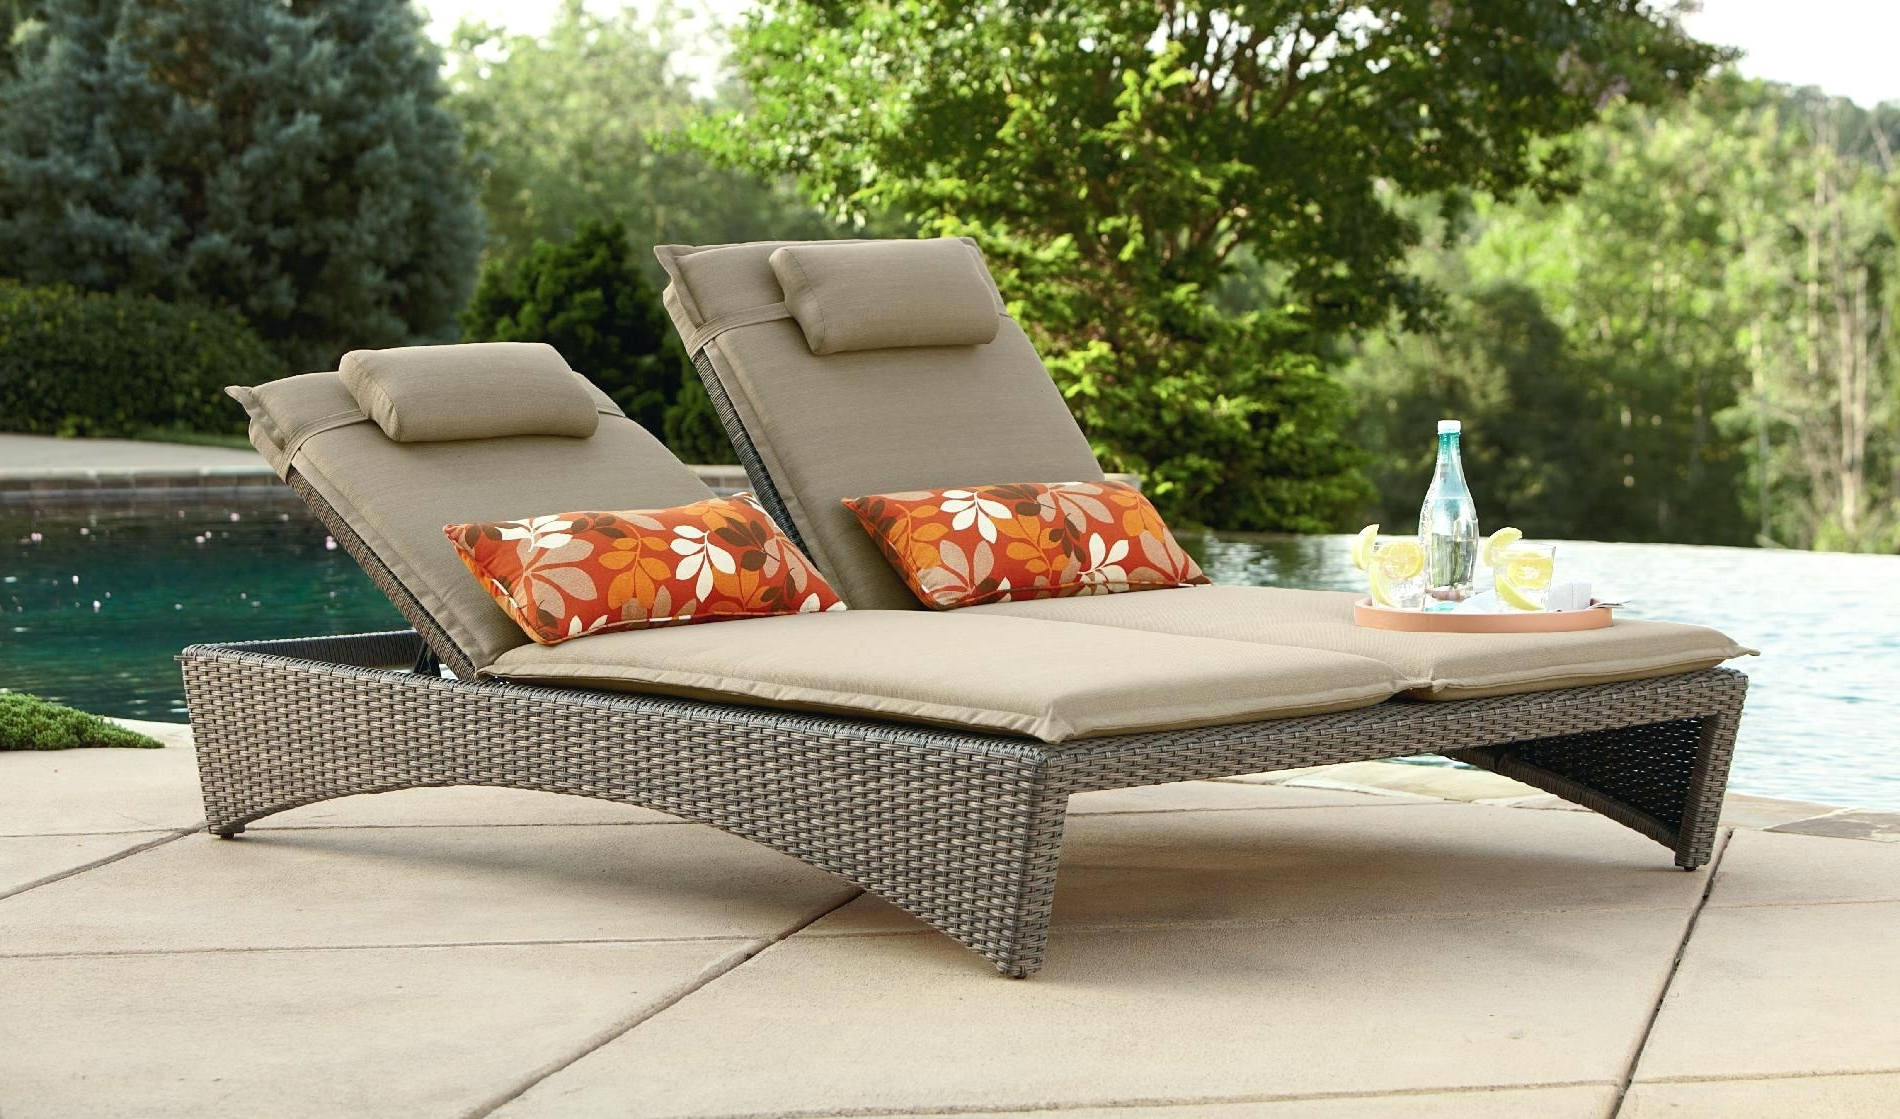 Outdoor Chaise Lounge Chairs Under 100 Awesome Chair For Two In Preferred Outdoor Chaise Lounge Chairs Under $ (View 6 of 15)